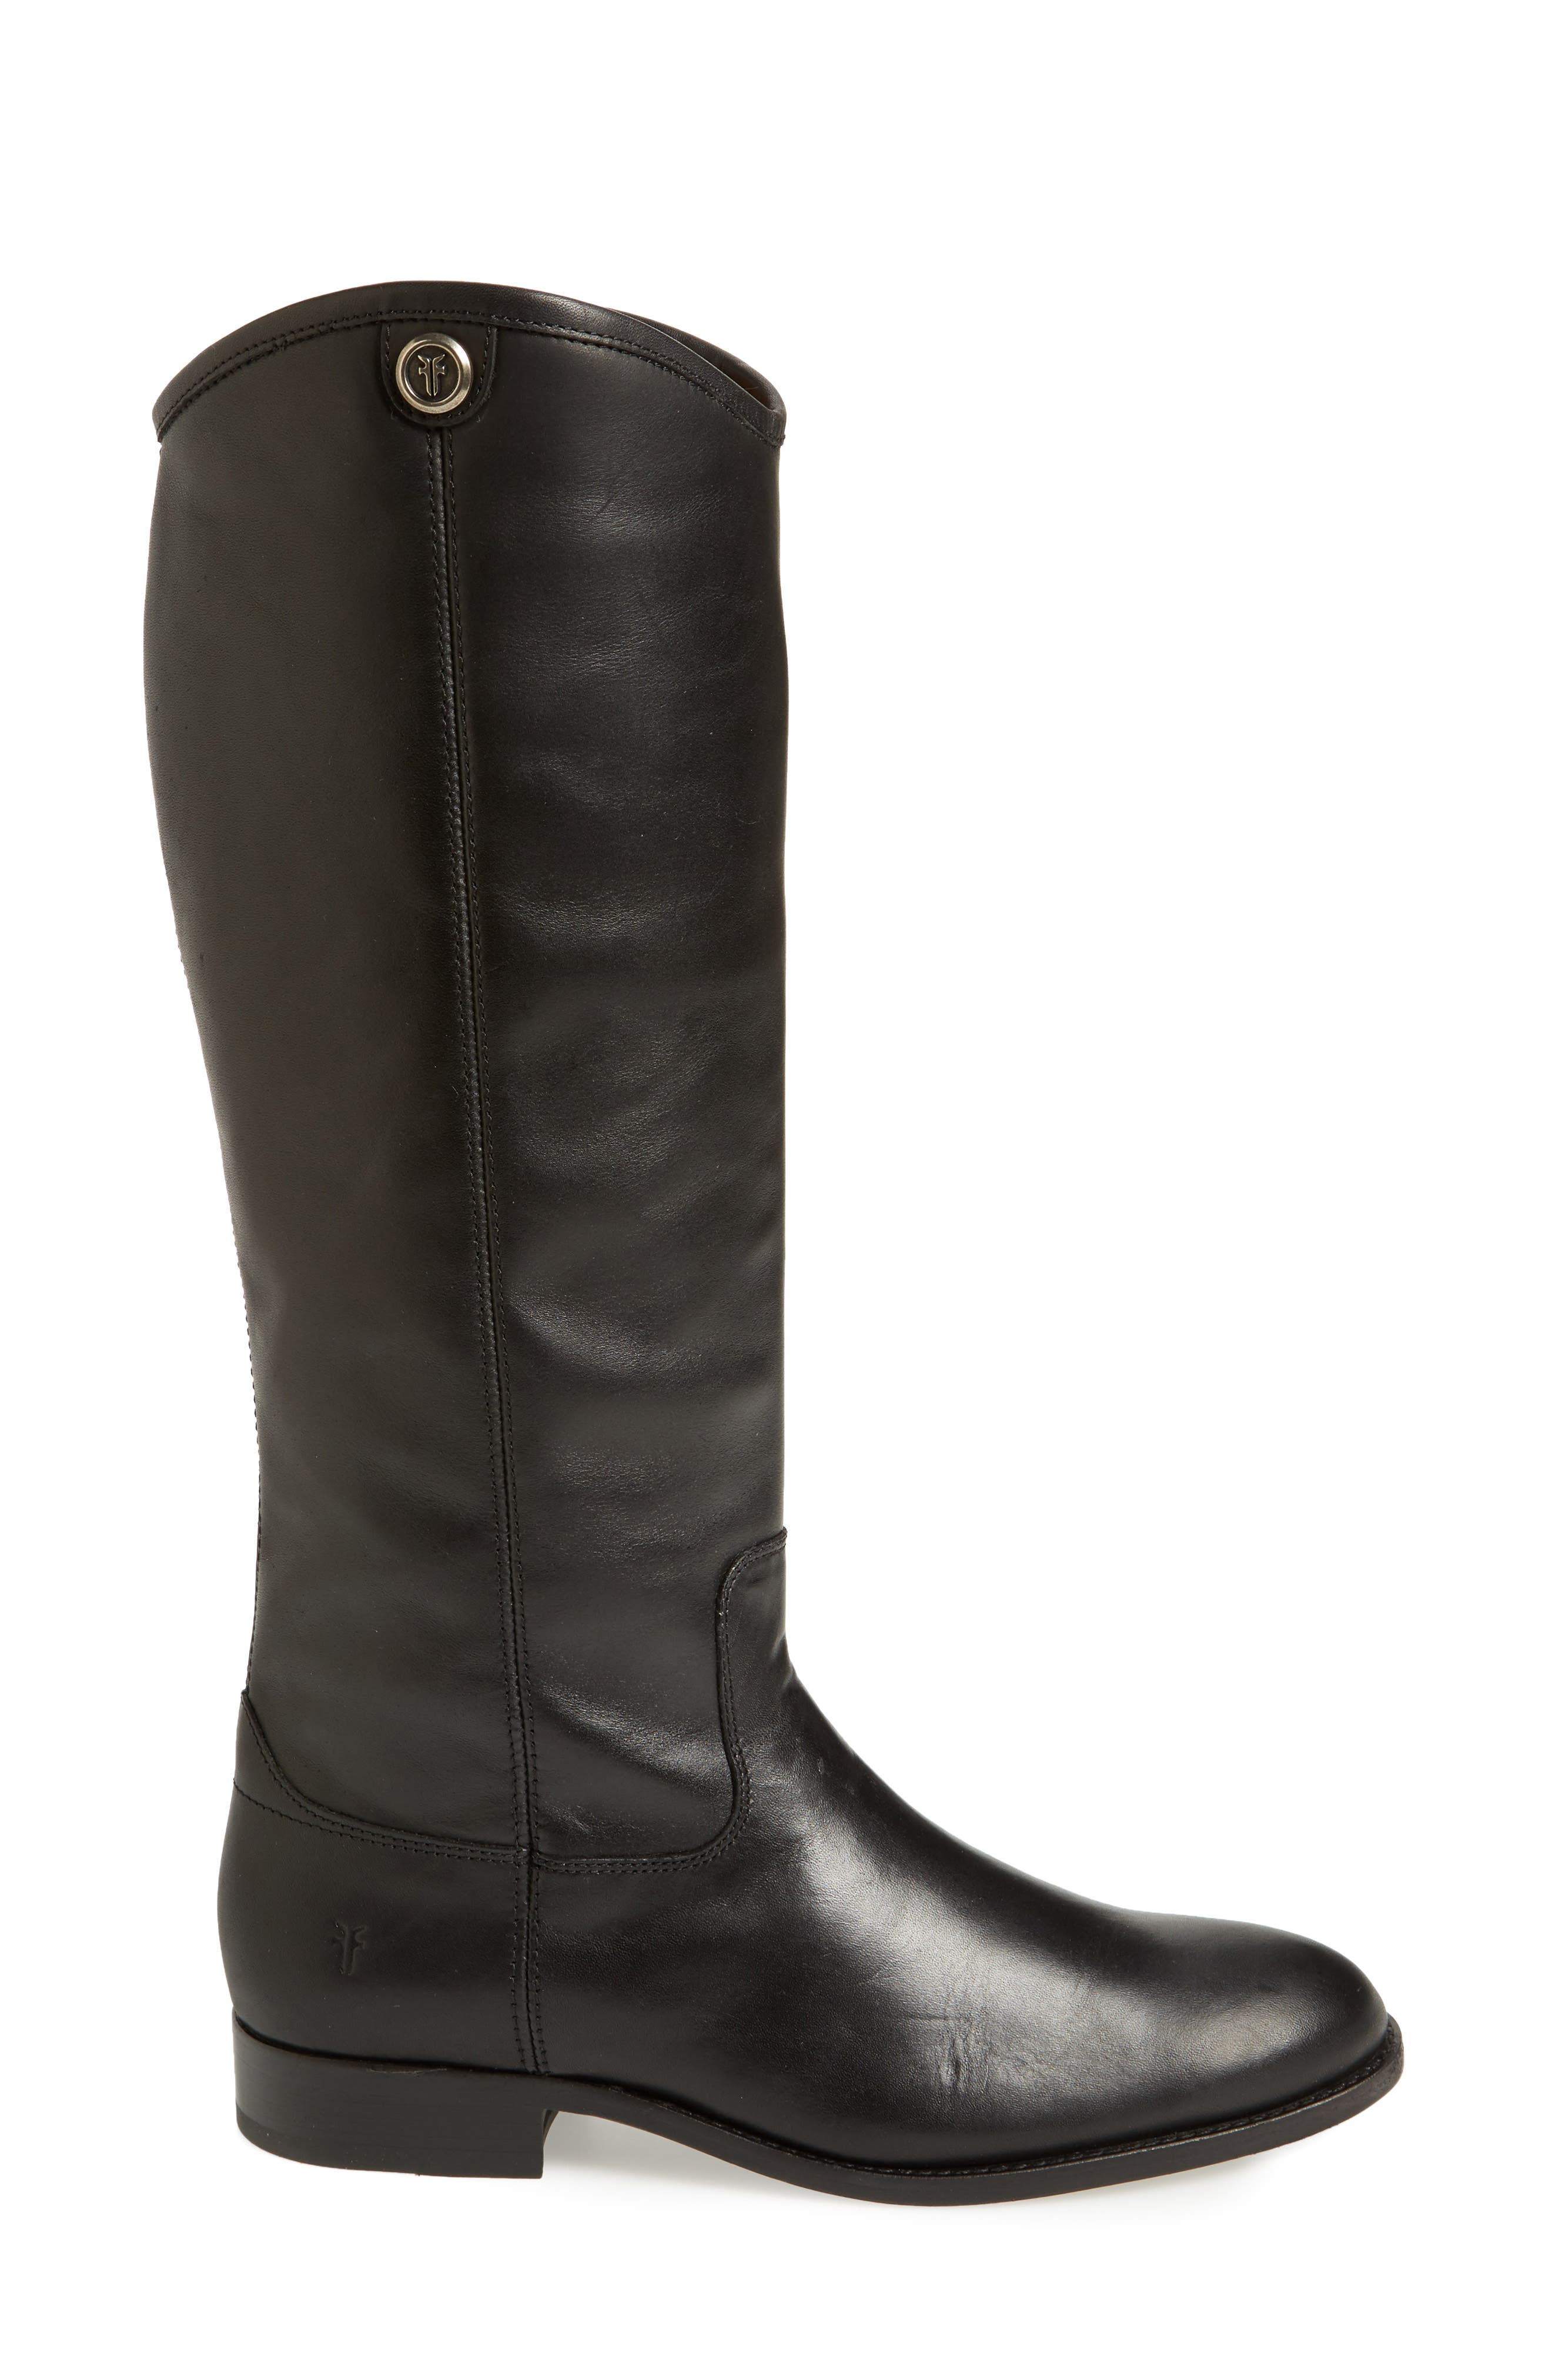 Melissa Button 2 Knee High Boot,                             Alternate thumbnail 3, color,                             Black Leather